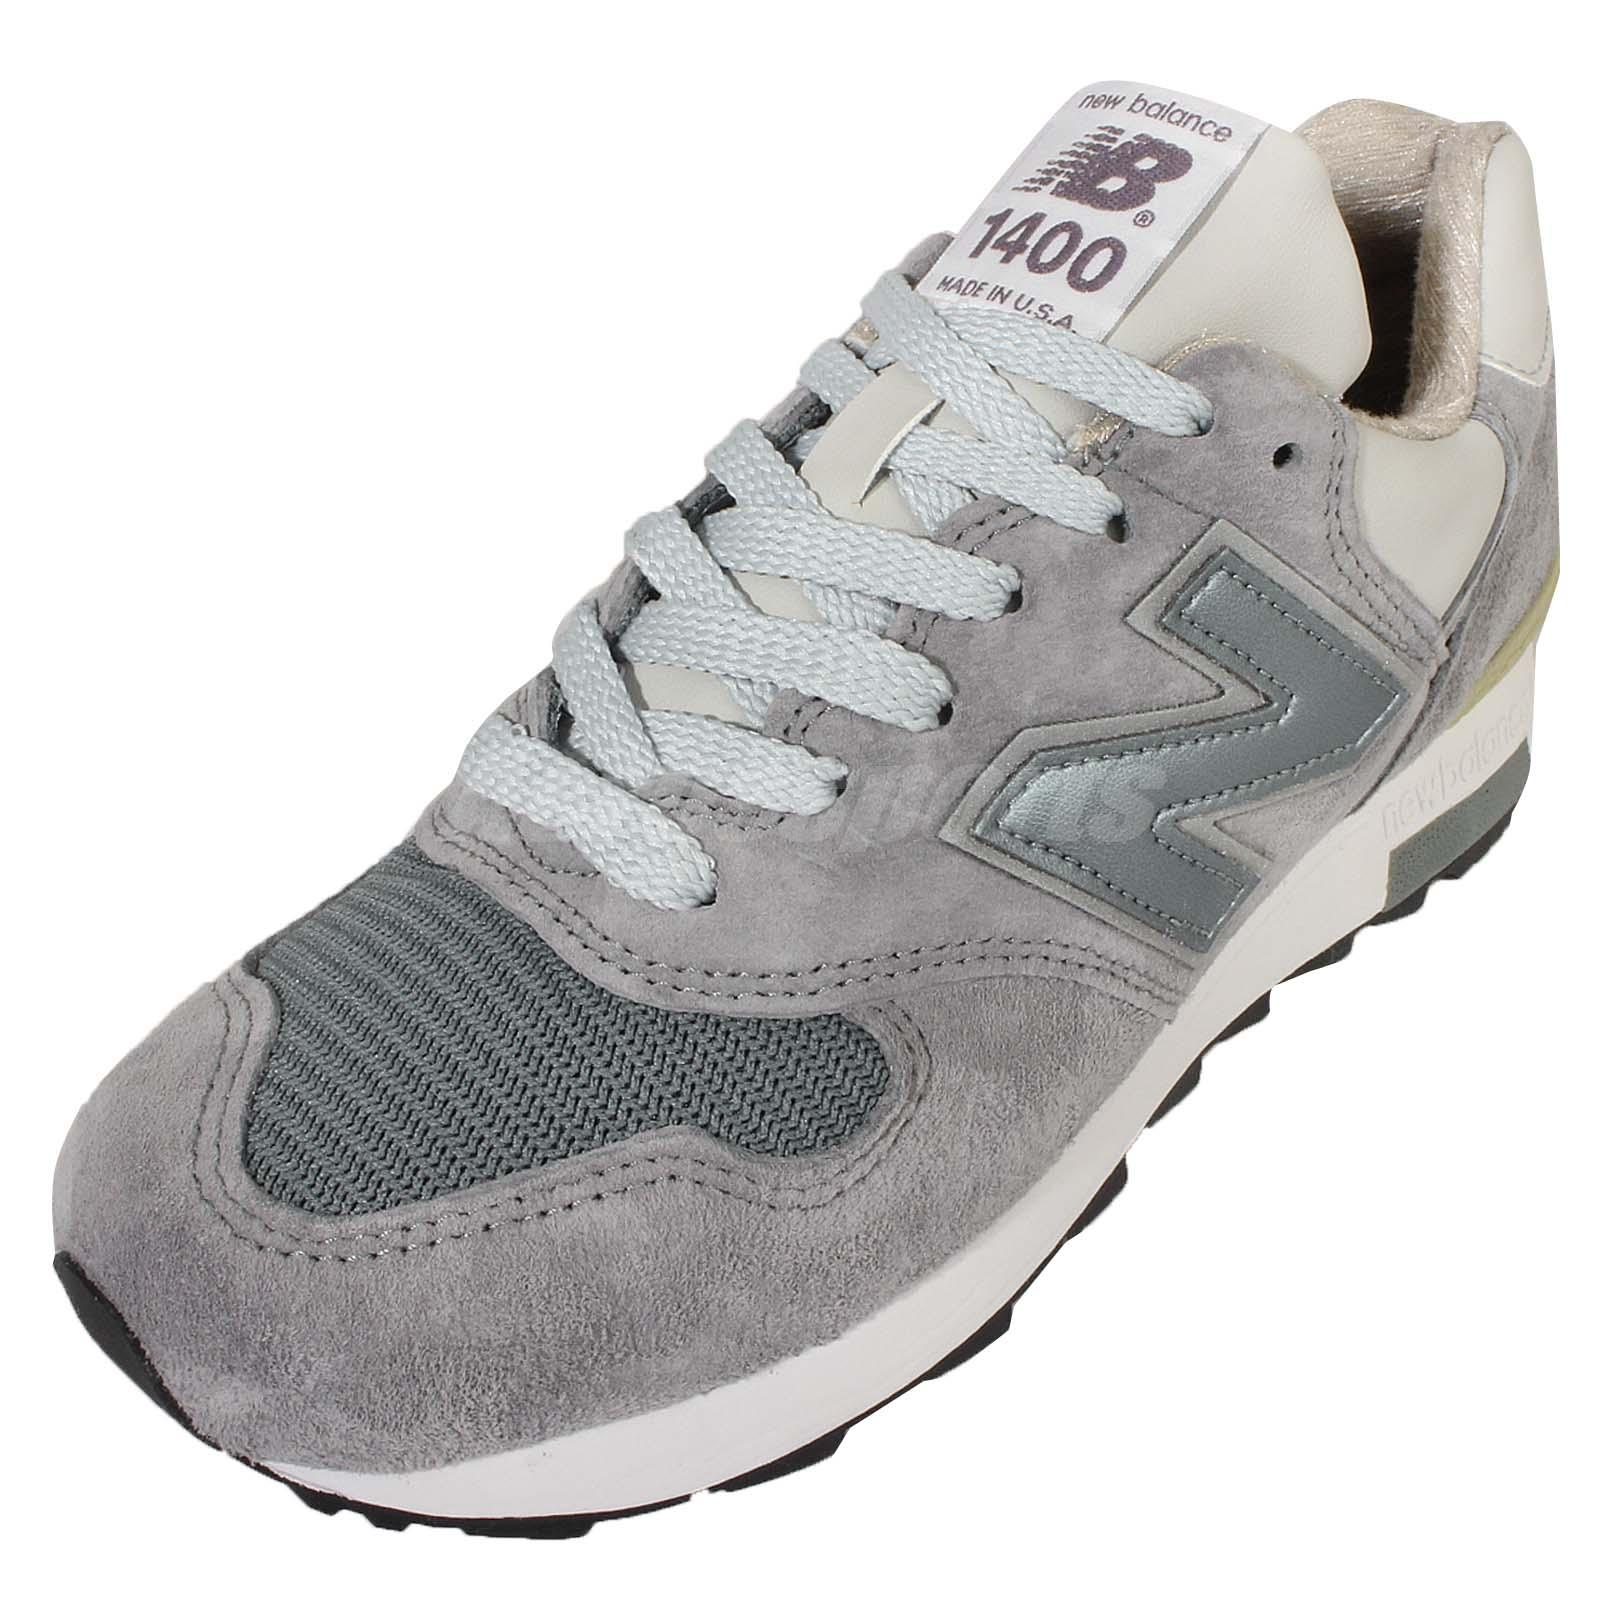 New Balance M1400NV D Navy Silver Mens Retro Running Shoes Made In USA M1400NVD